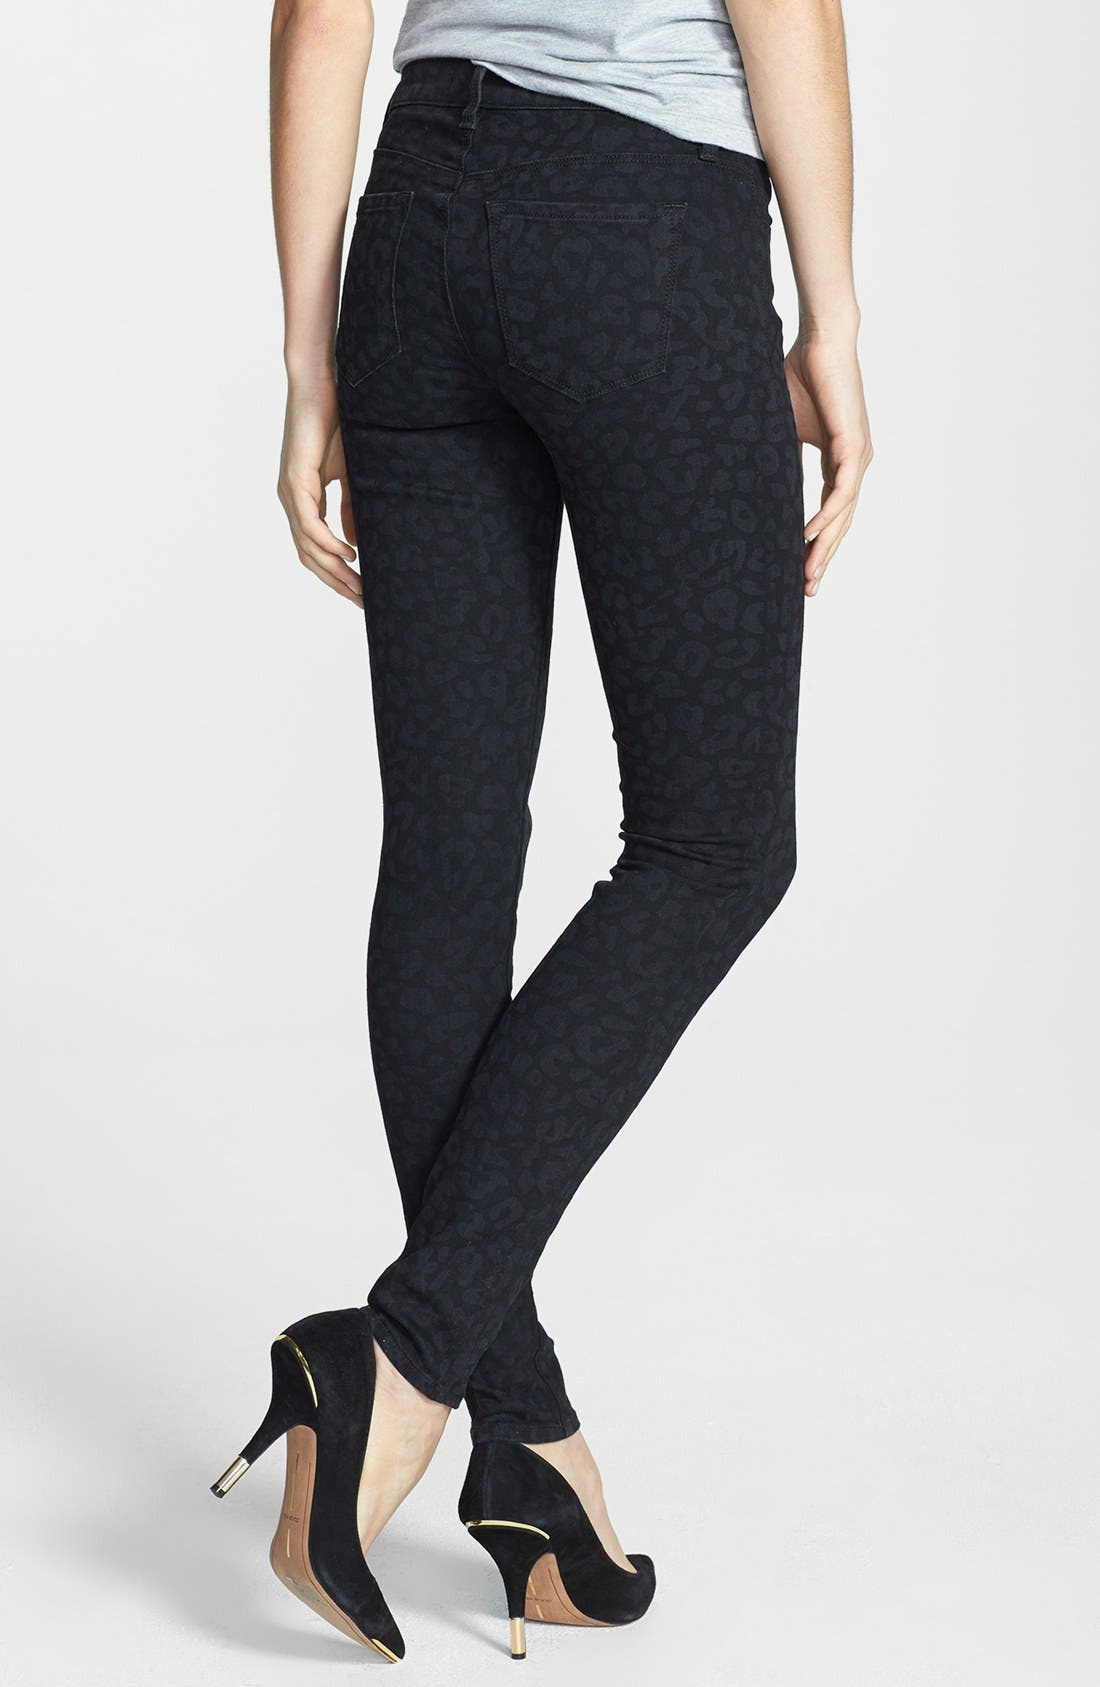 '620' Mid Rise Skinny Jeans,                             Alternate thumbnail 3, color,                             002